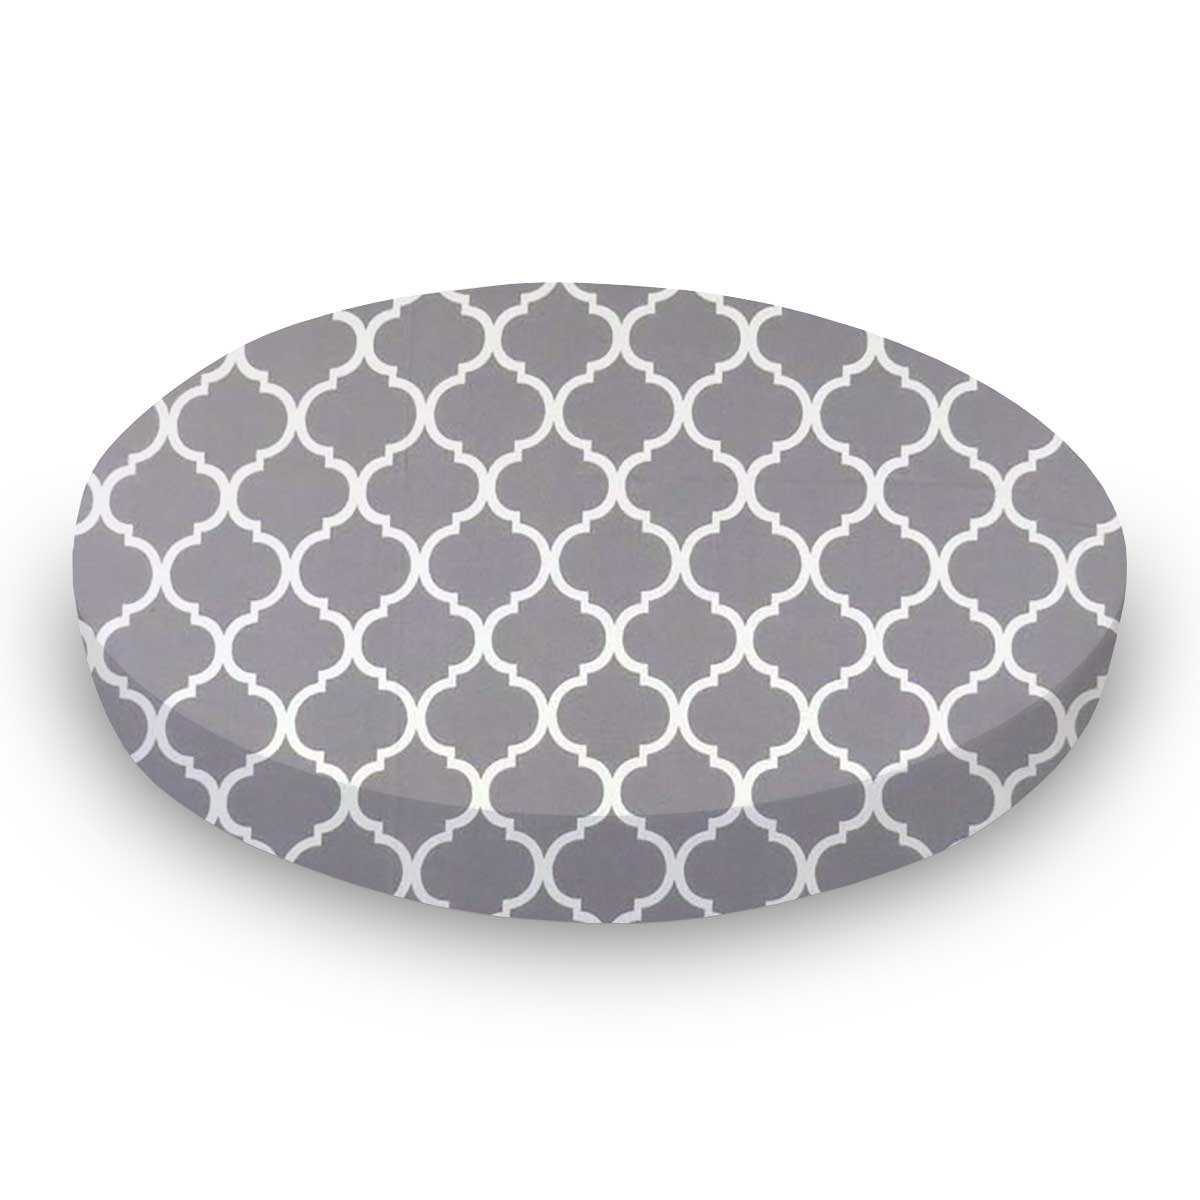 SheetWorld Fitted 100/% Cotton Percale Cradle Sheet 18 x 36 Grey Large Quatrefoil Made in USA